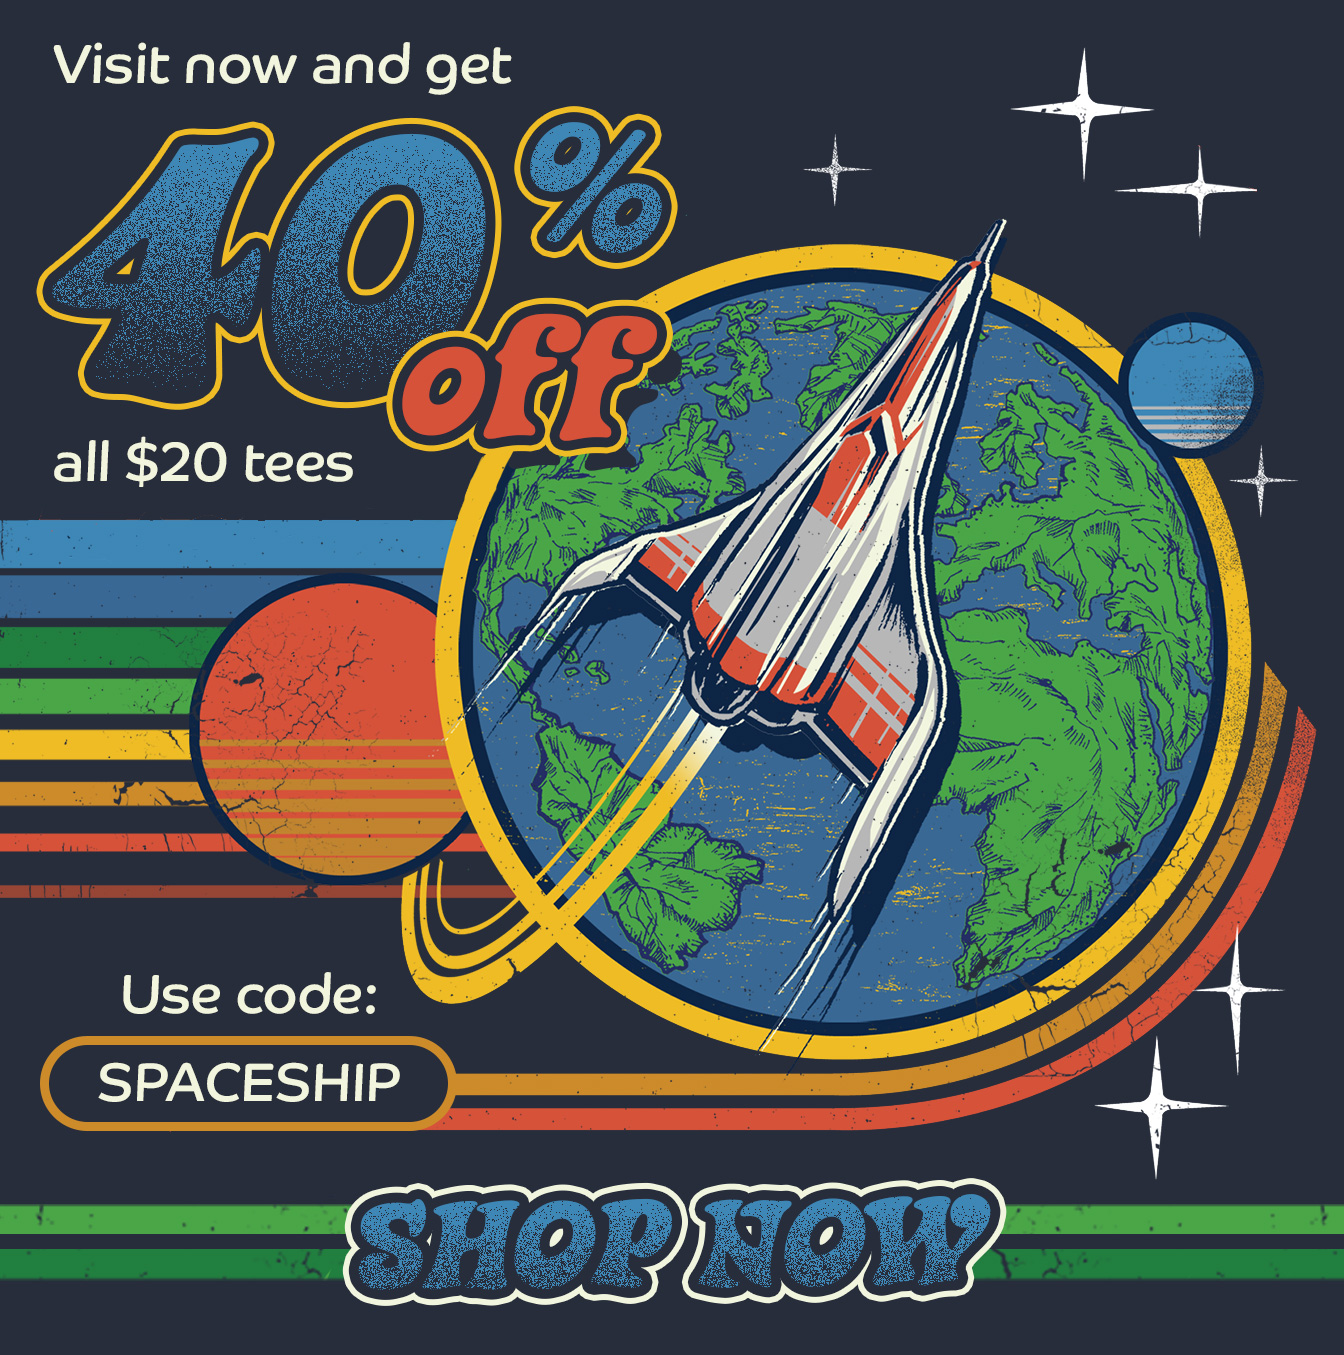 Get 40% off all $20 tees for a limited time with code SPACESHIP